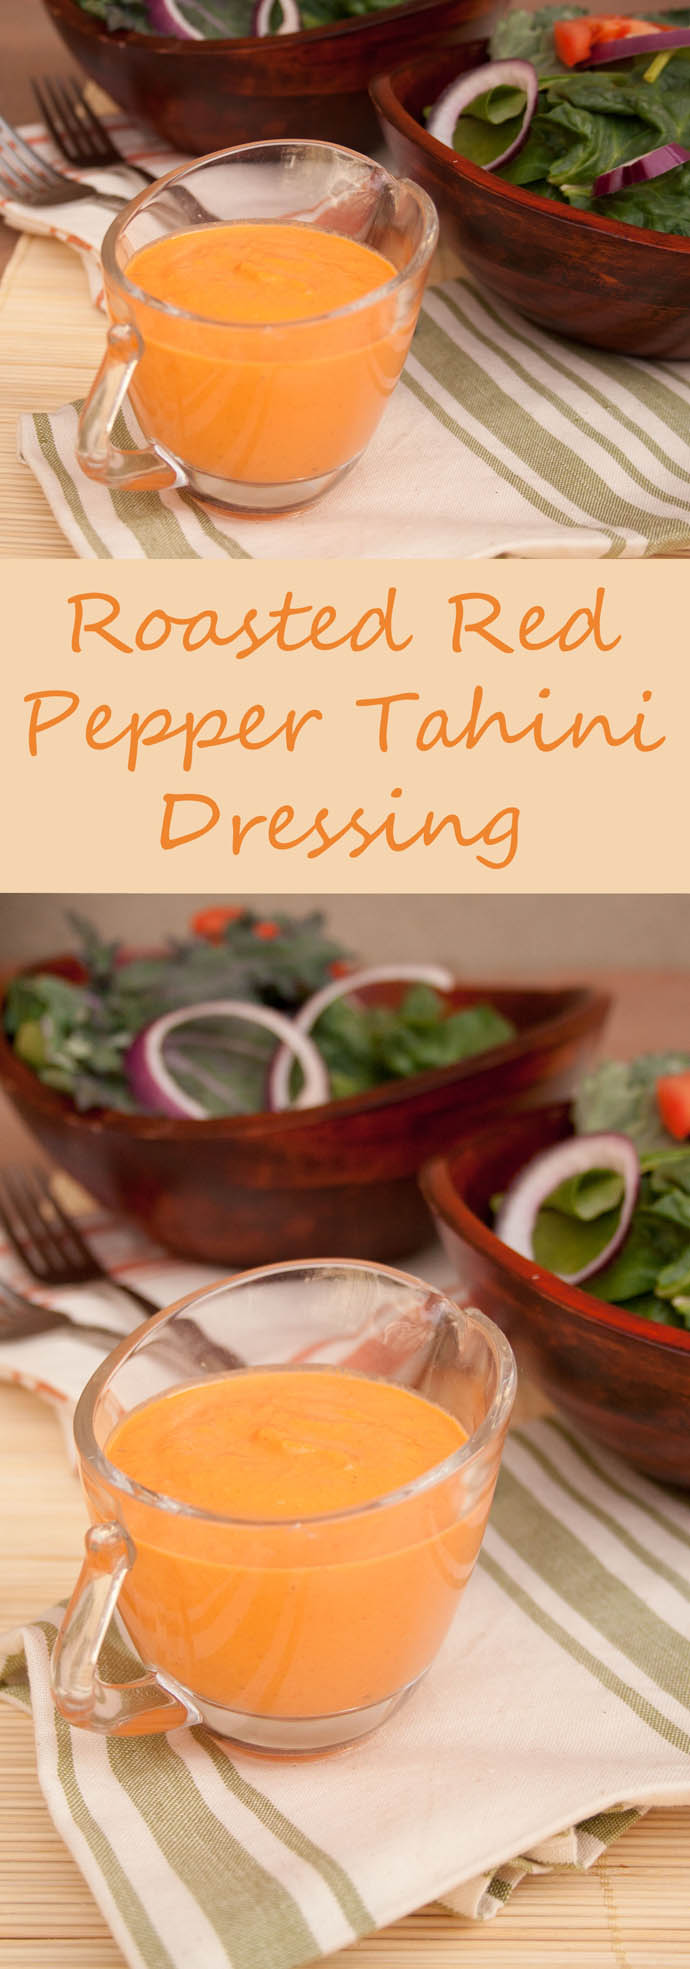 Roasted Red Pepper Tahini Dressing collage photo with text.